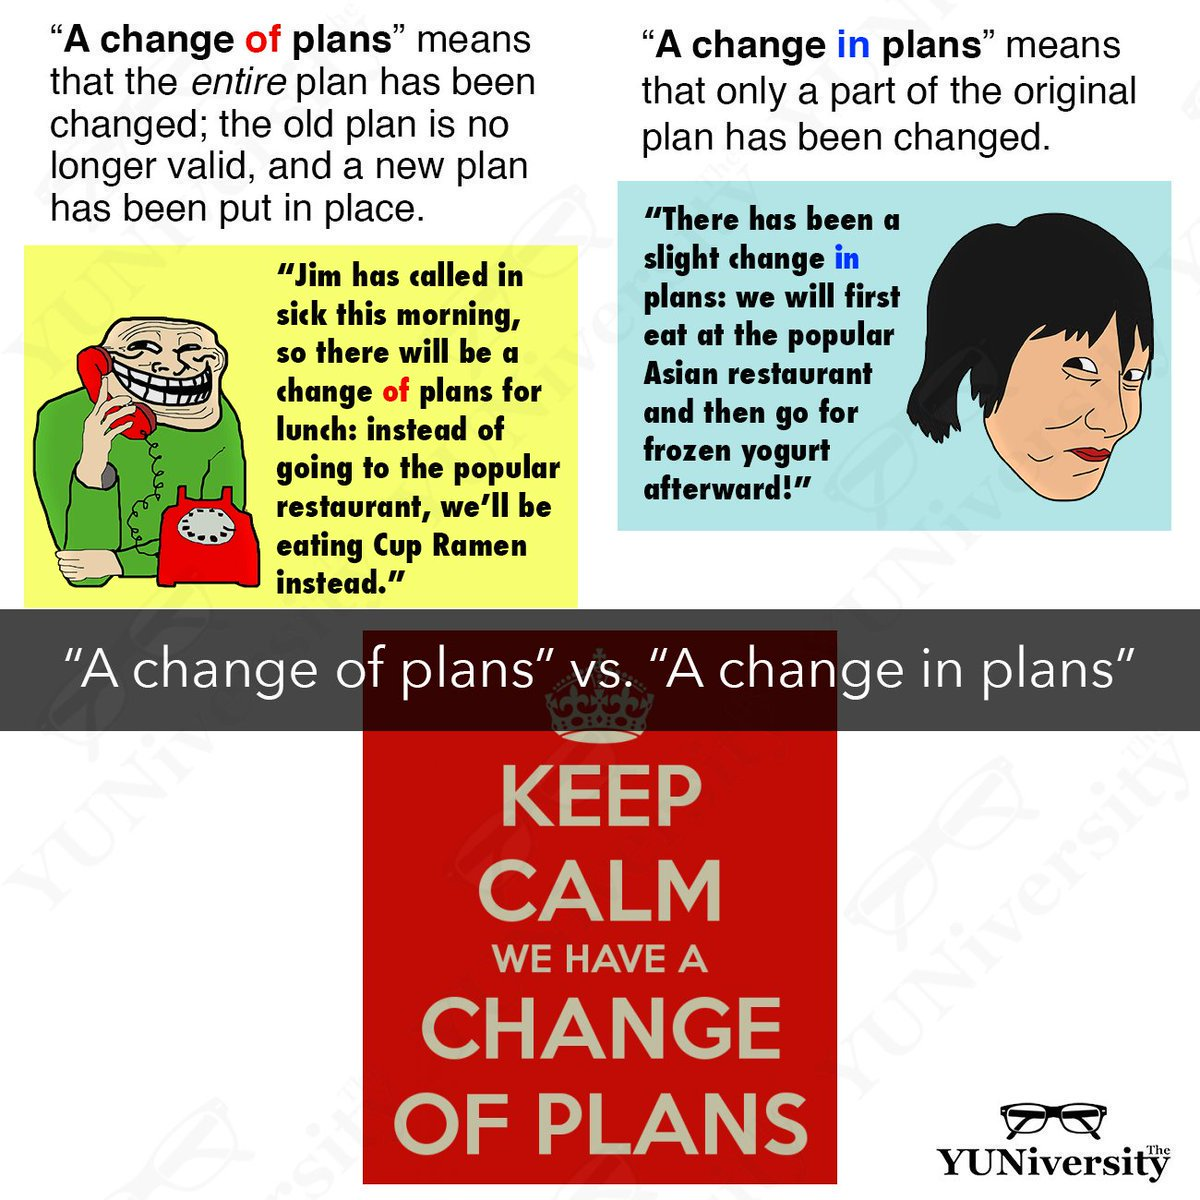 Change of plans = the entire plan has been changed Change in plans = only a part of the plan has been changed #grammar